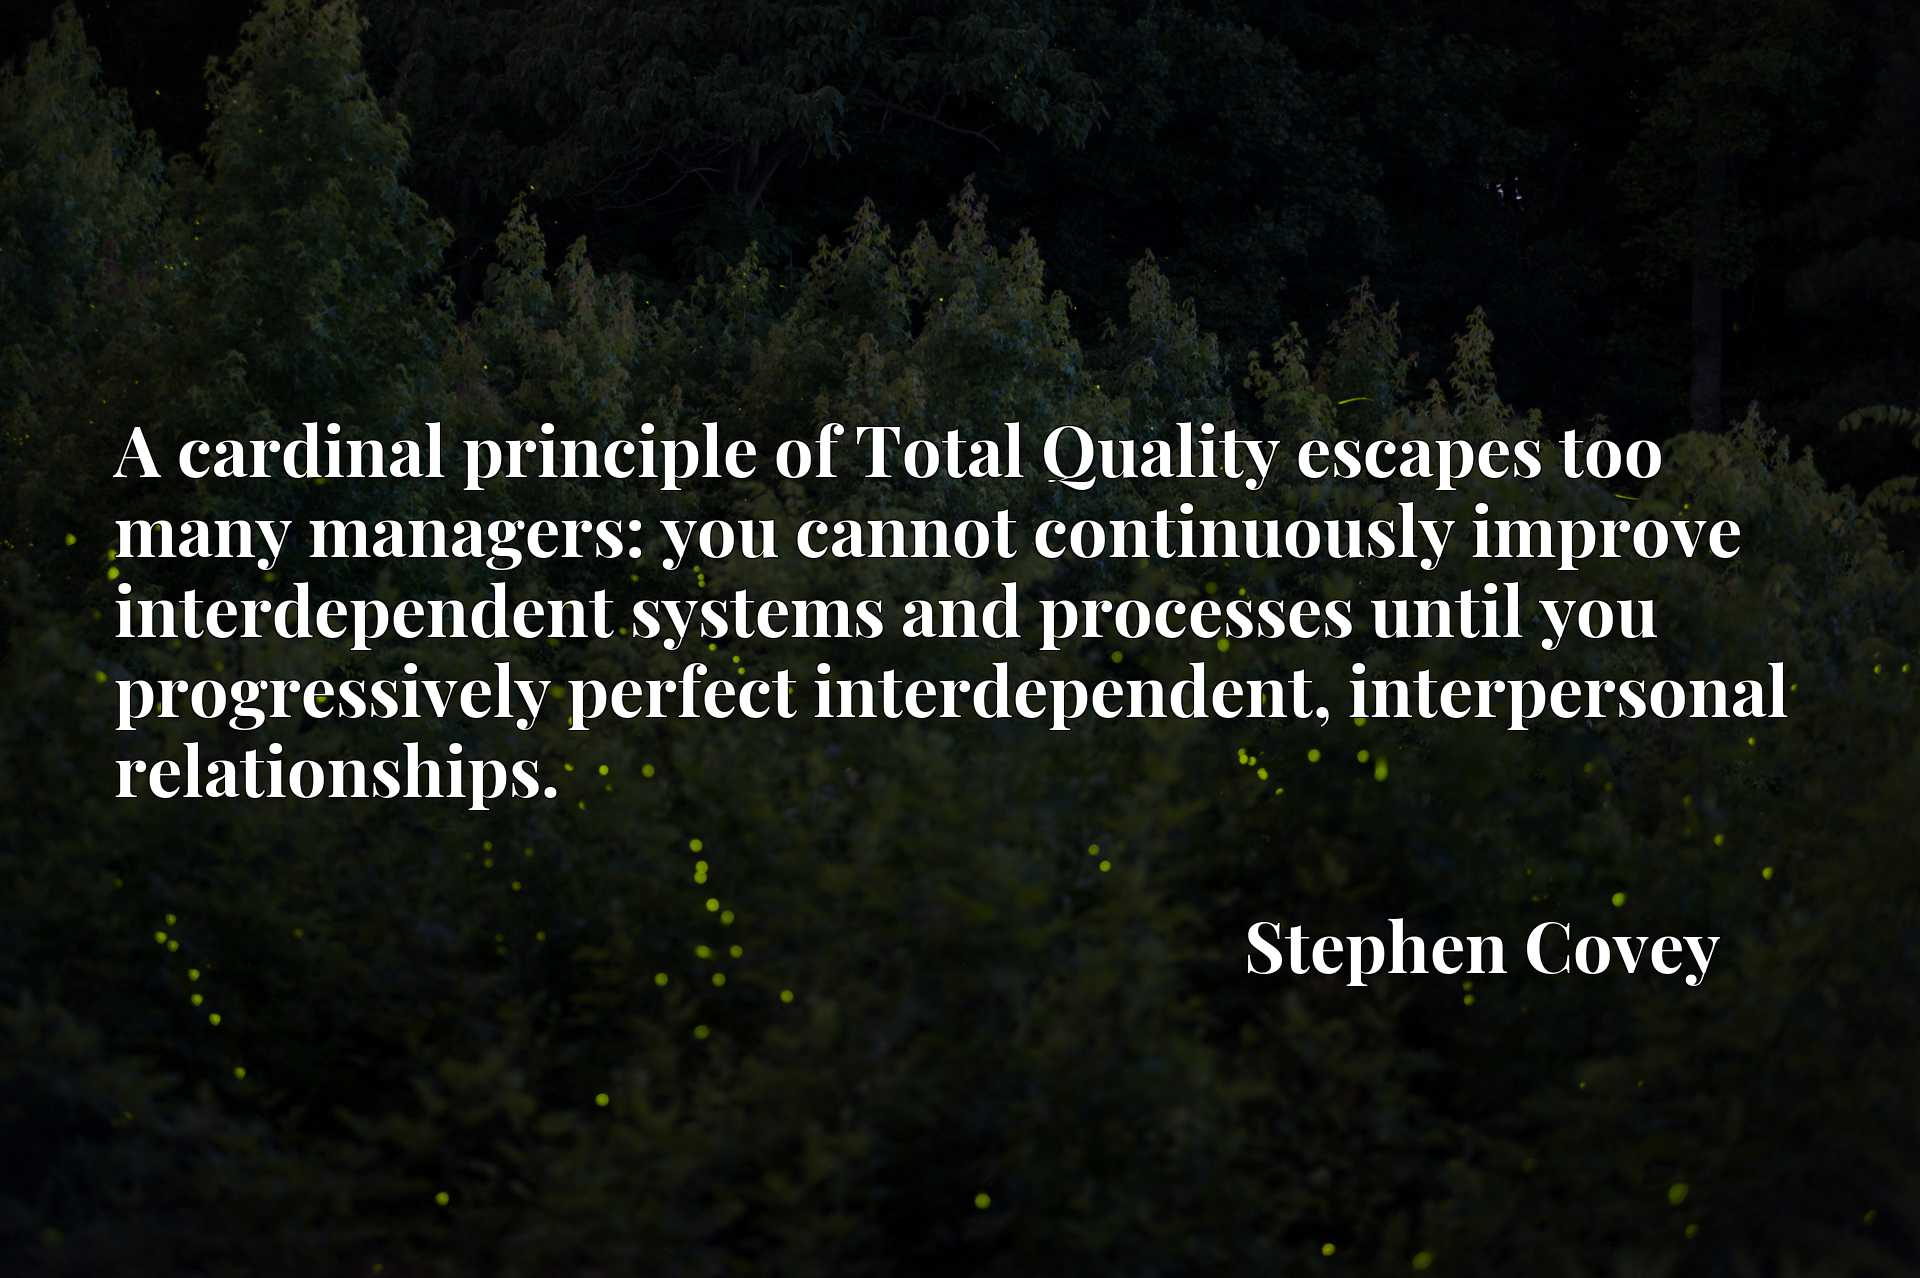 A cardinal principle of Total Quality escapes too many managers: you cannot continuously improve interdependent systems and processes until you progressively perfect interdependent, interpersonal relationships.